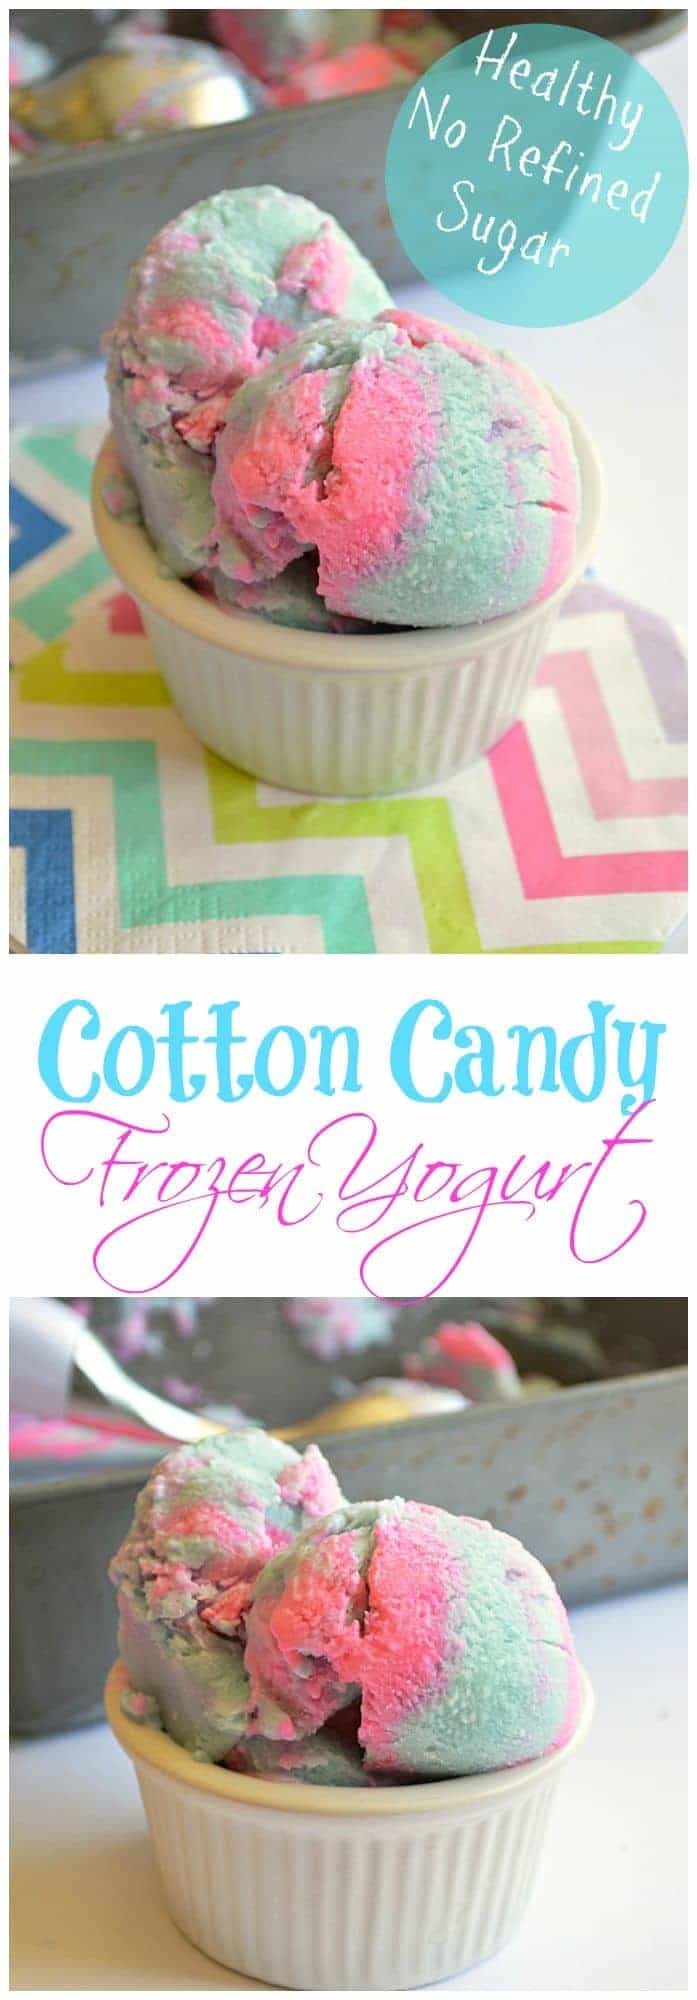 Cotton Candy Frozen Yogurt